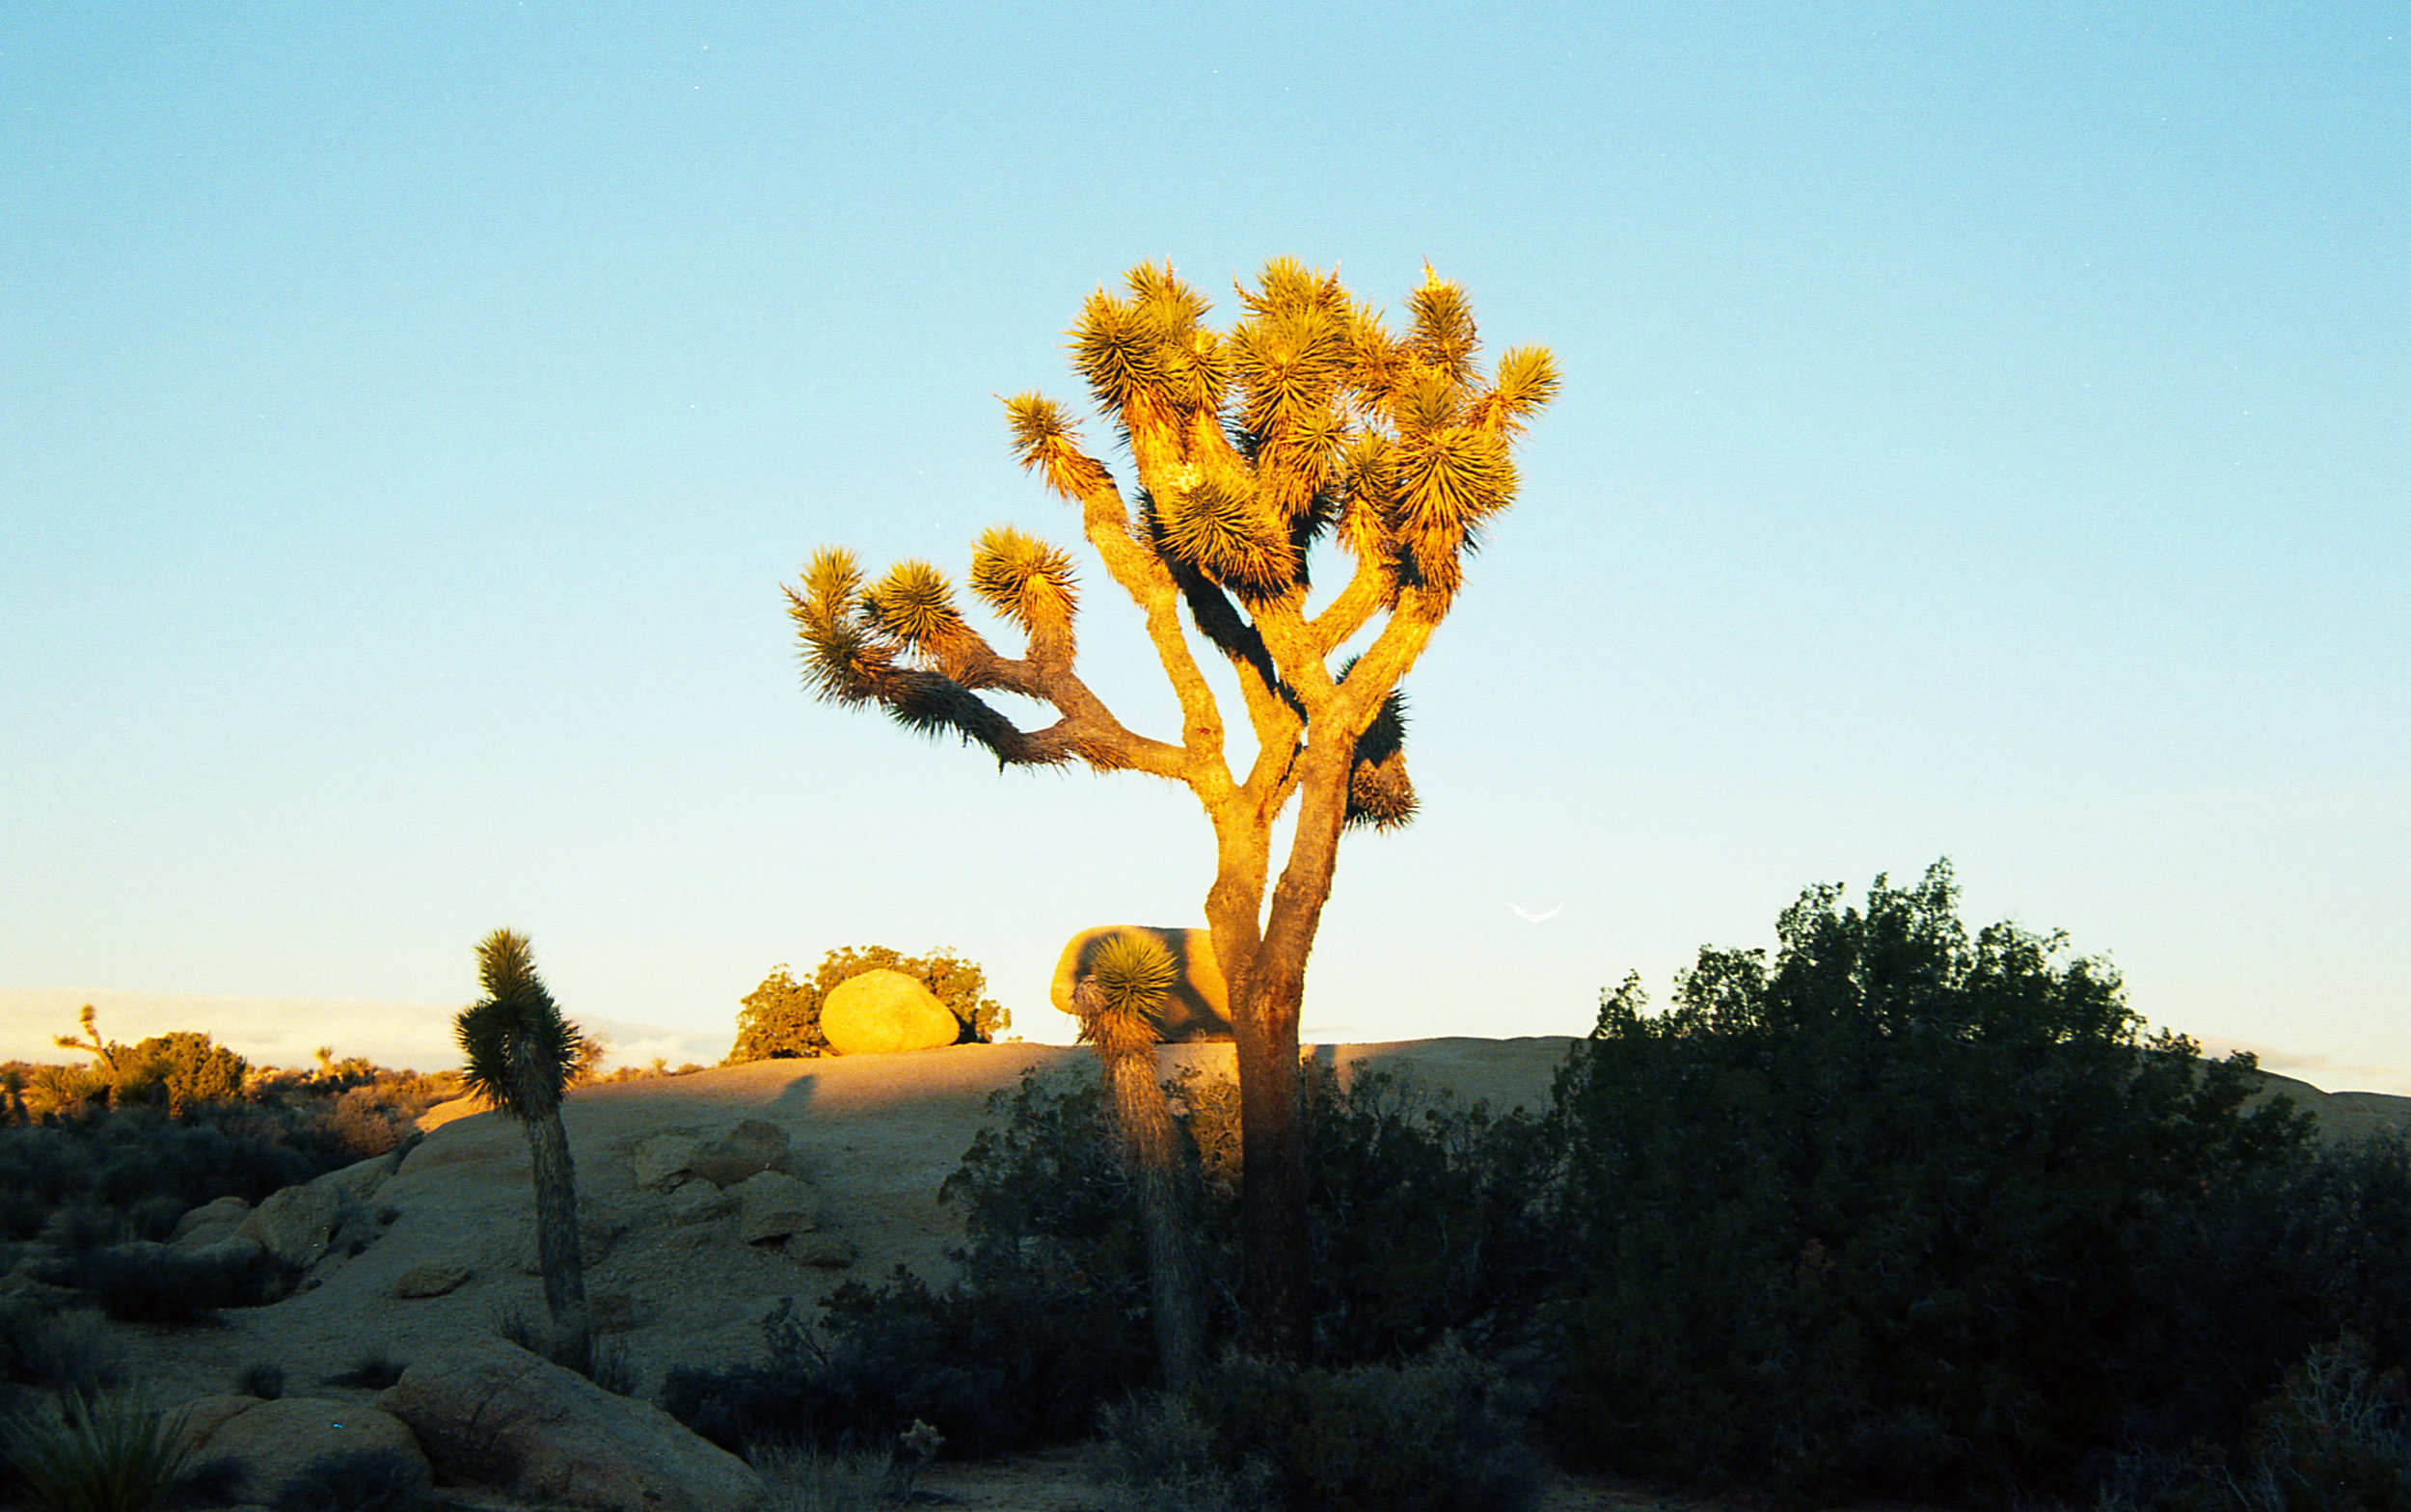 The joshua trees remind me of something right out of a Dr. Seuss book. What do you think?